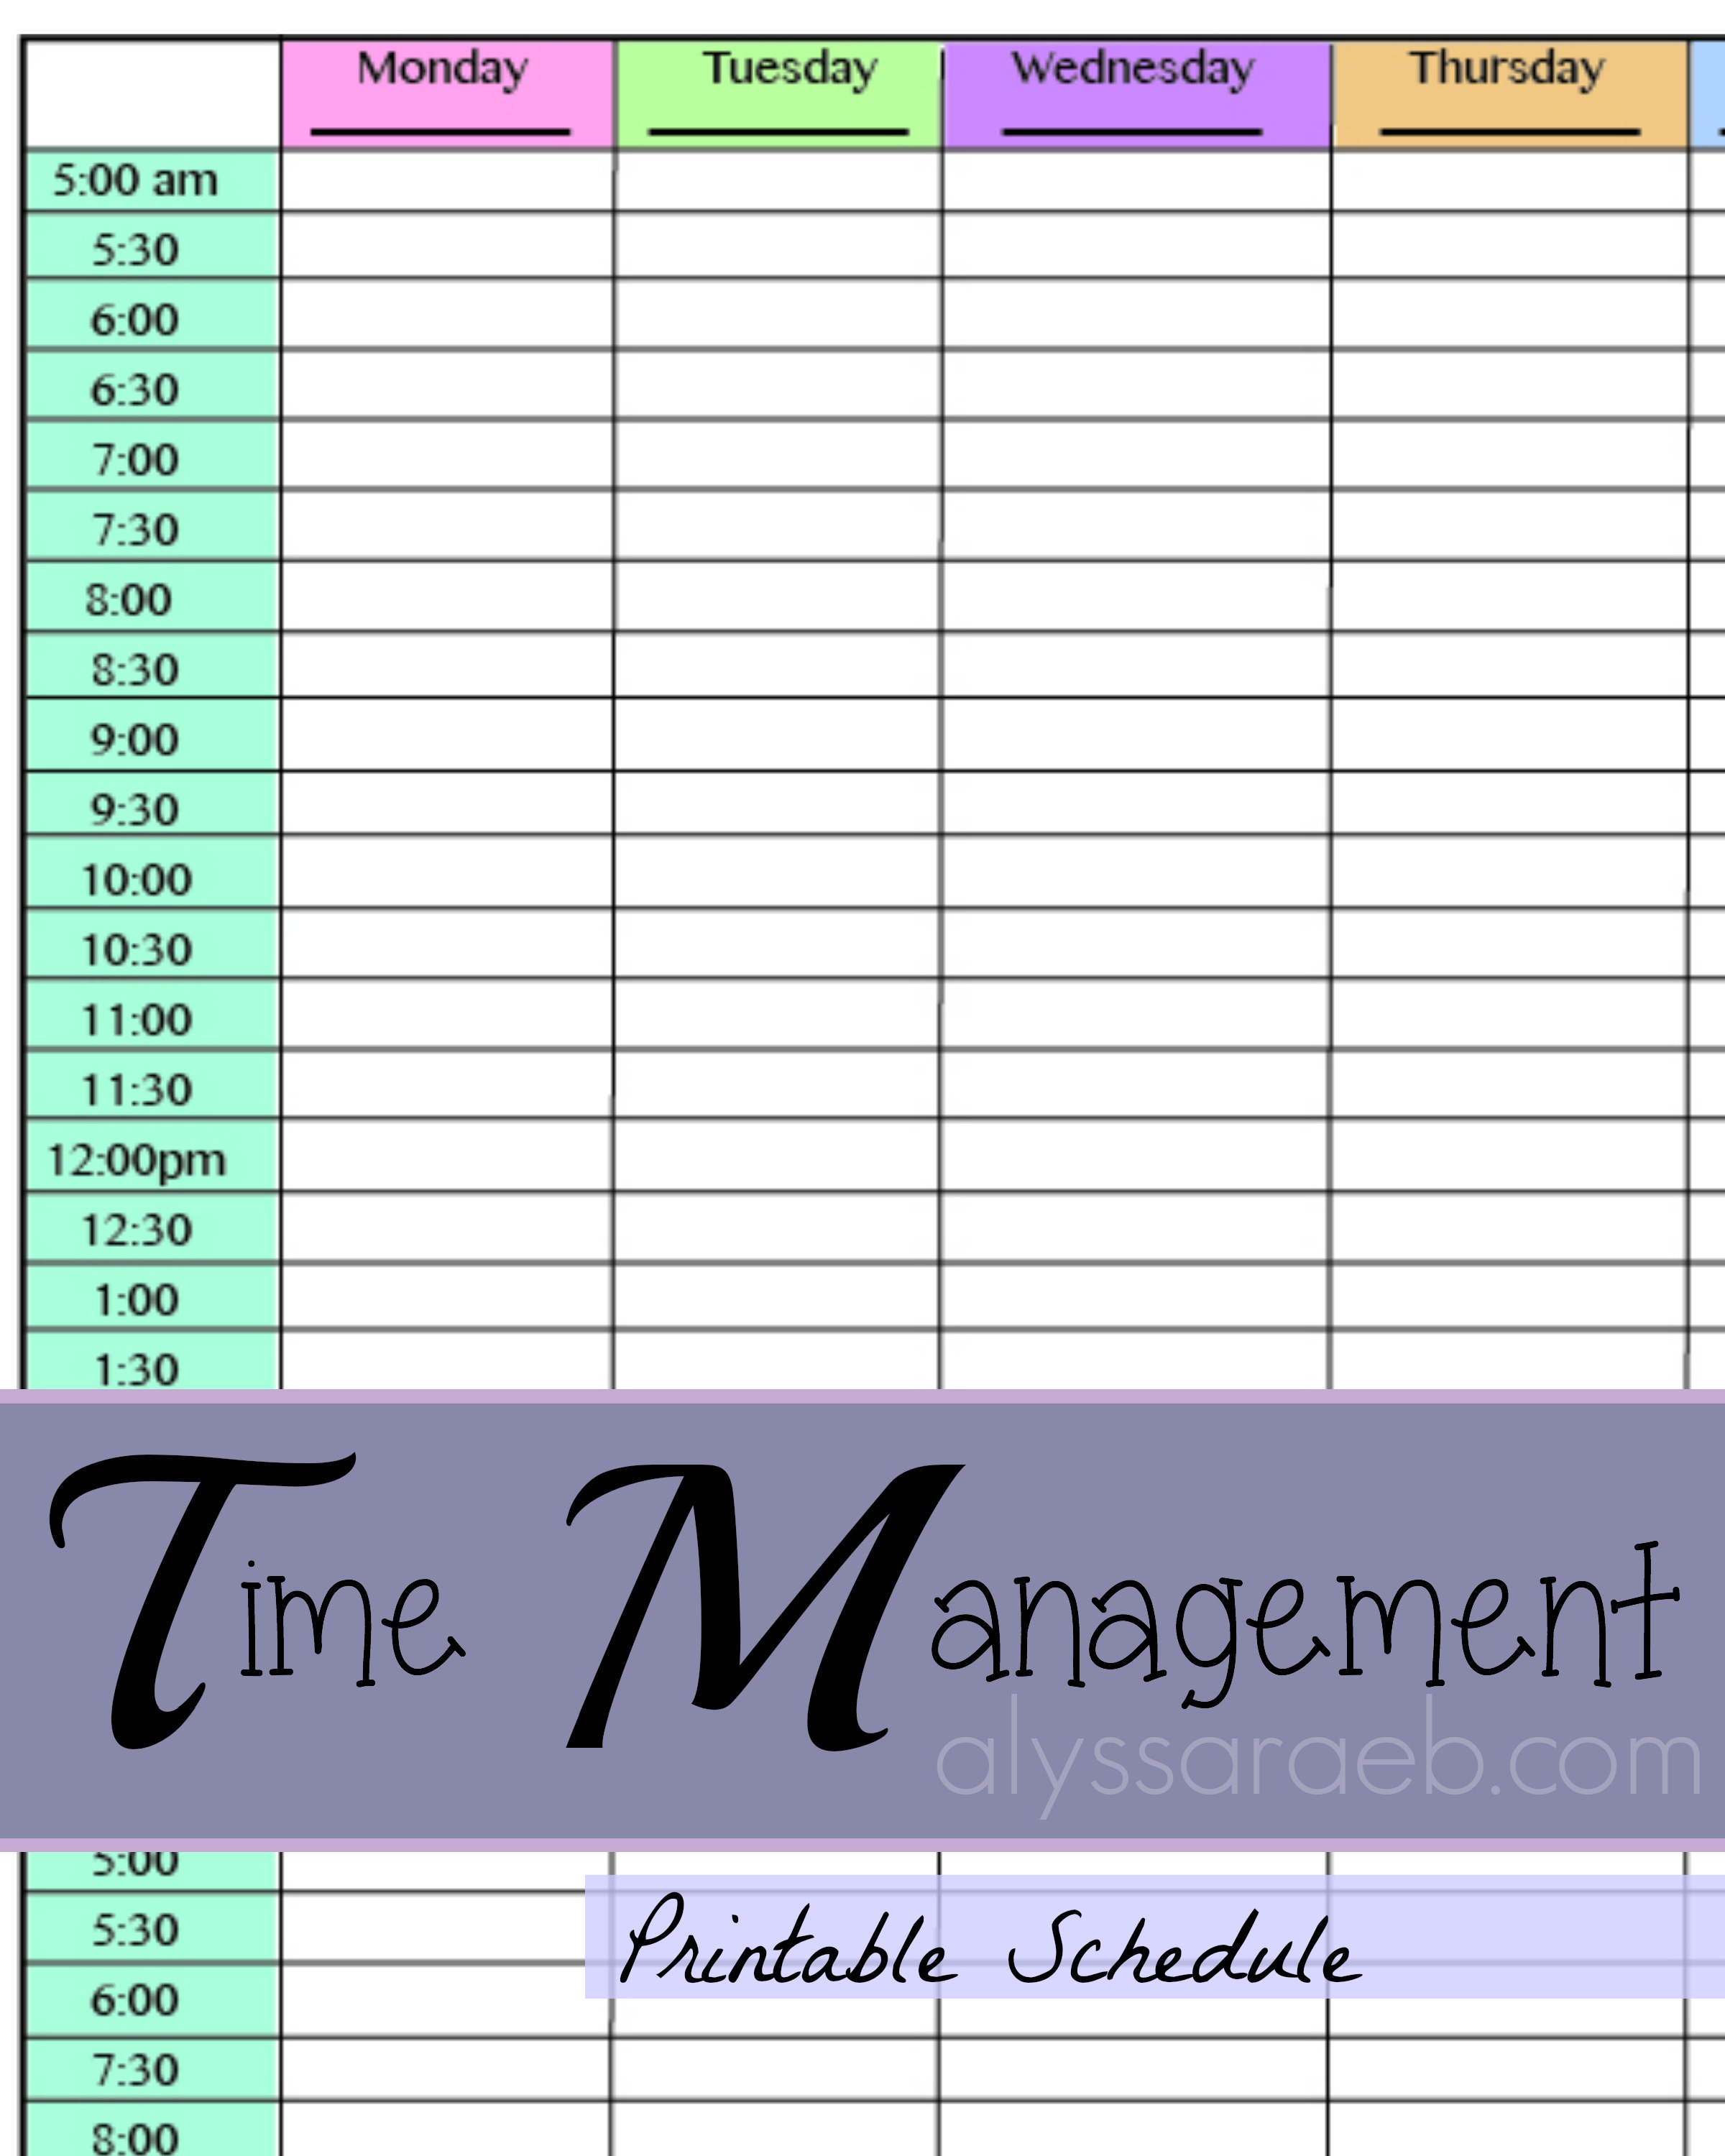 time management planner templates free - printable planner alyssa rae